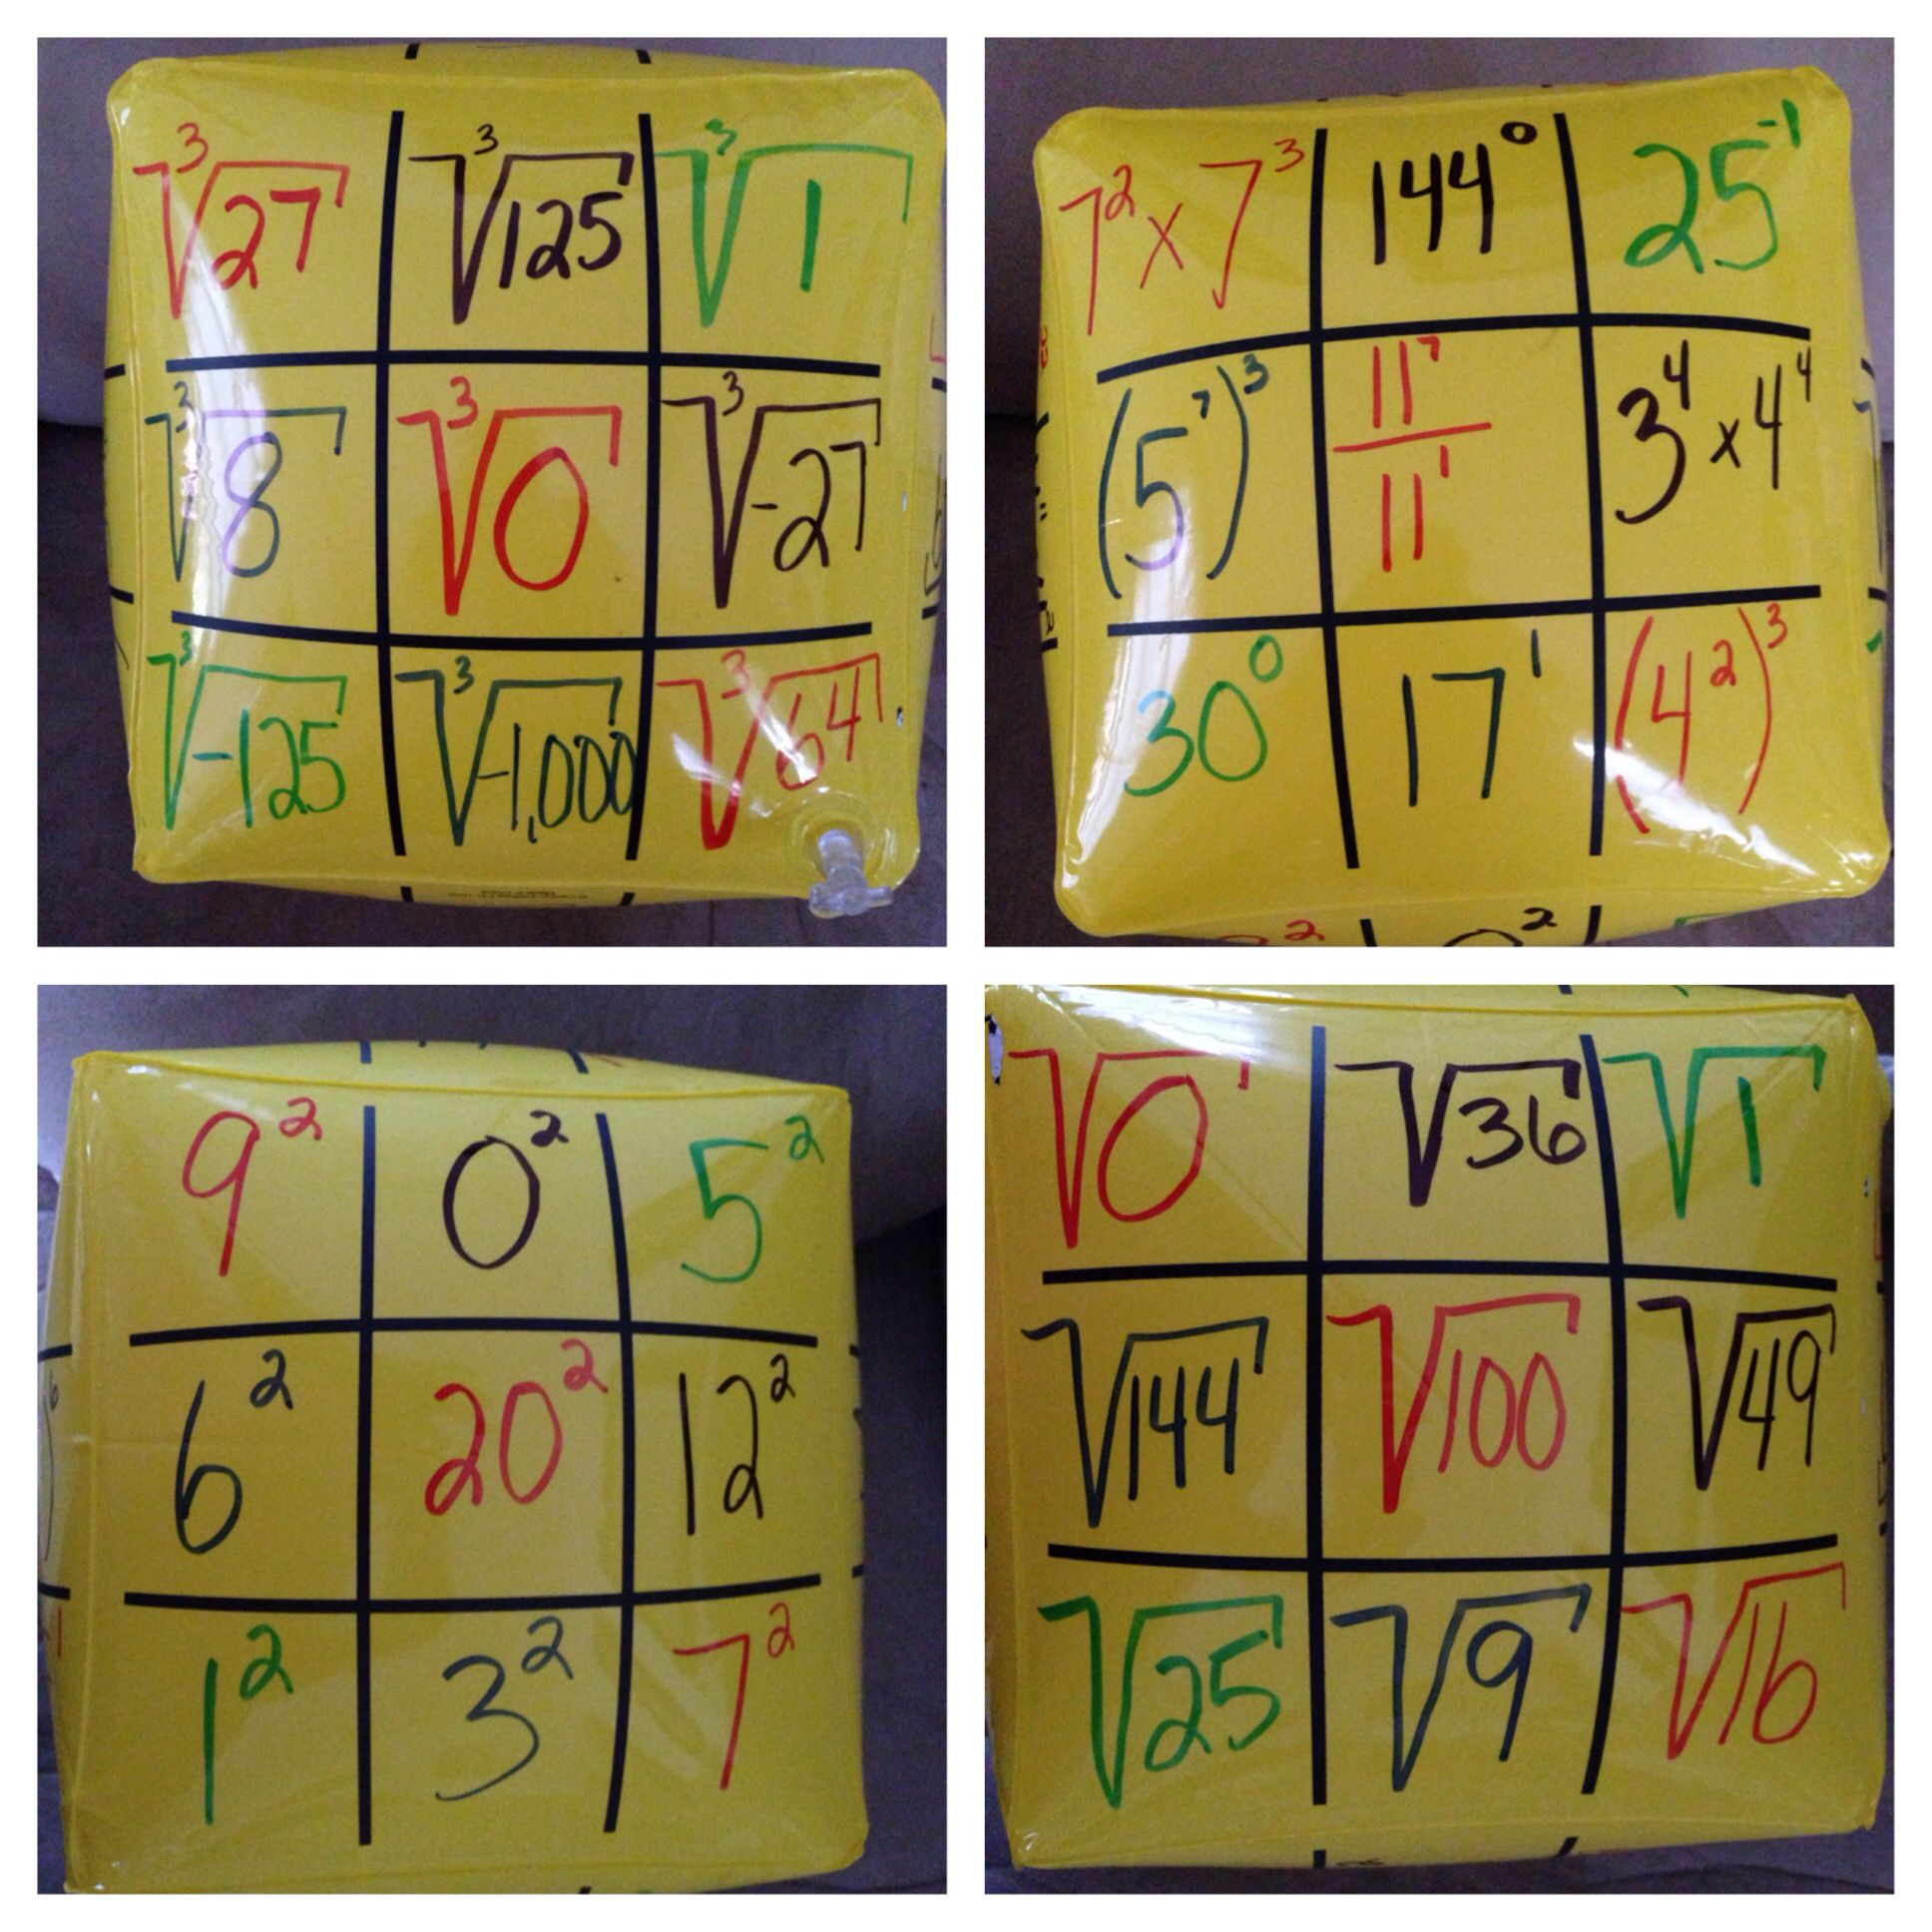 Cube Roots Square Roots And Laws Of Exponents Beach Ball